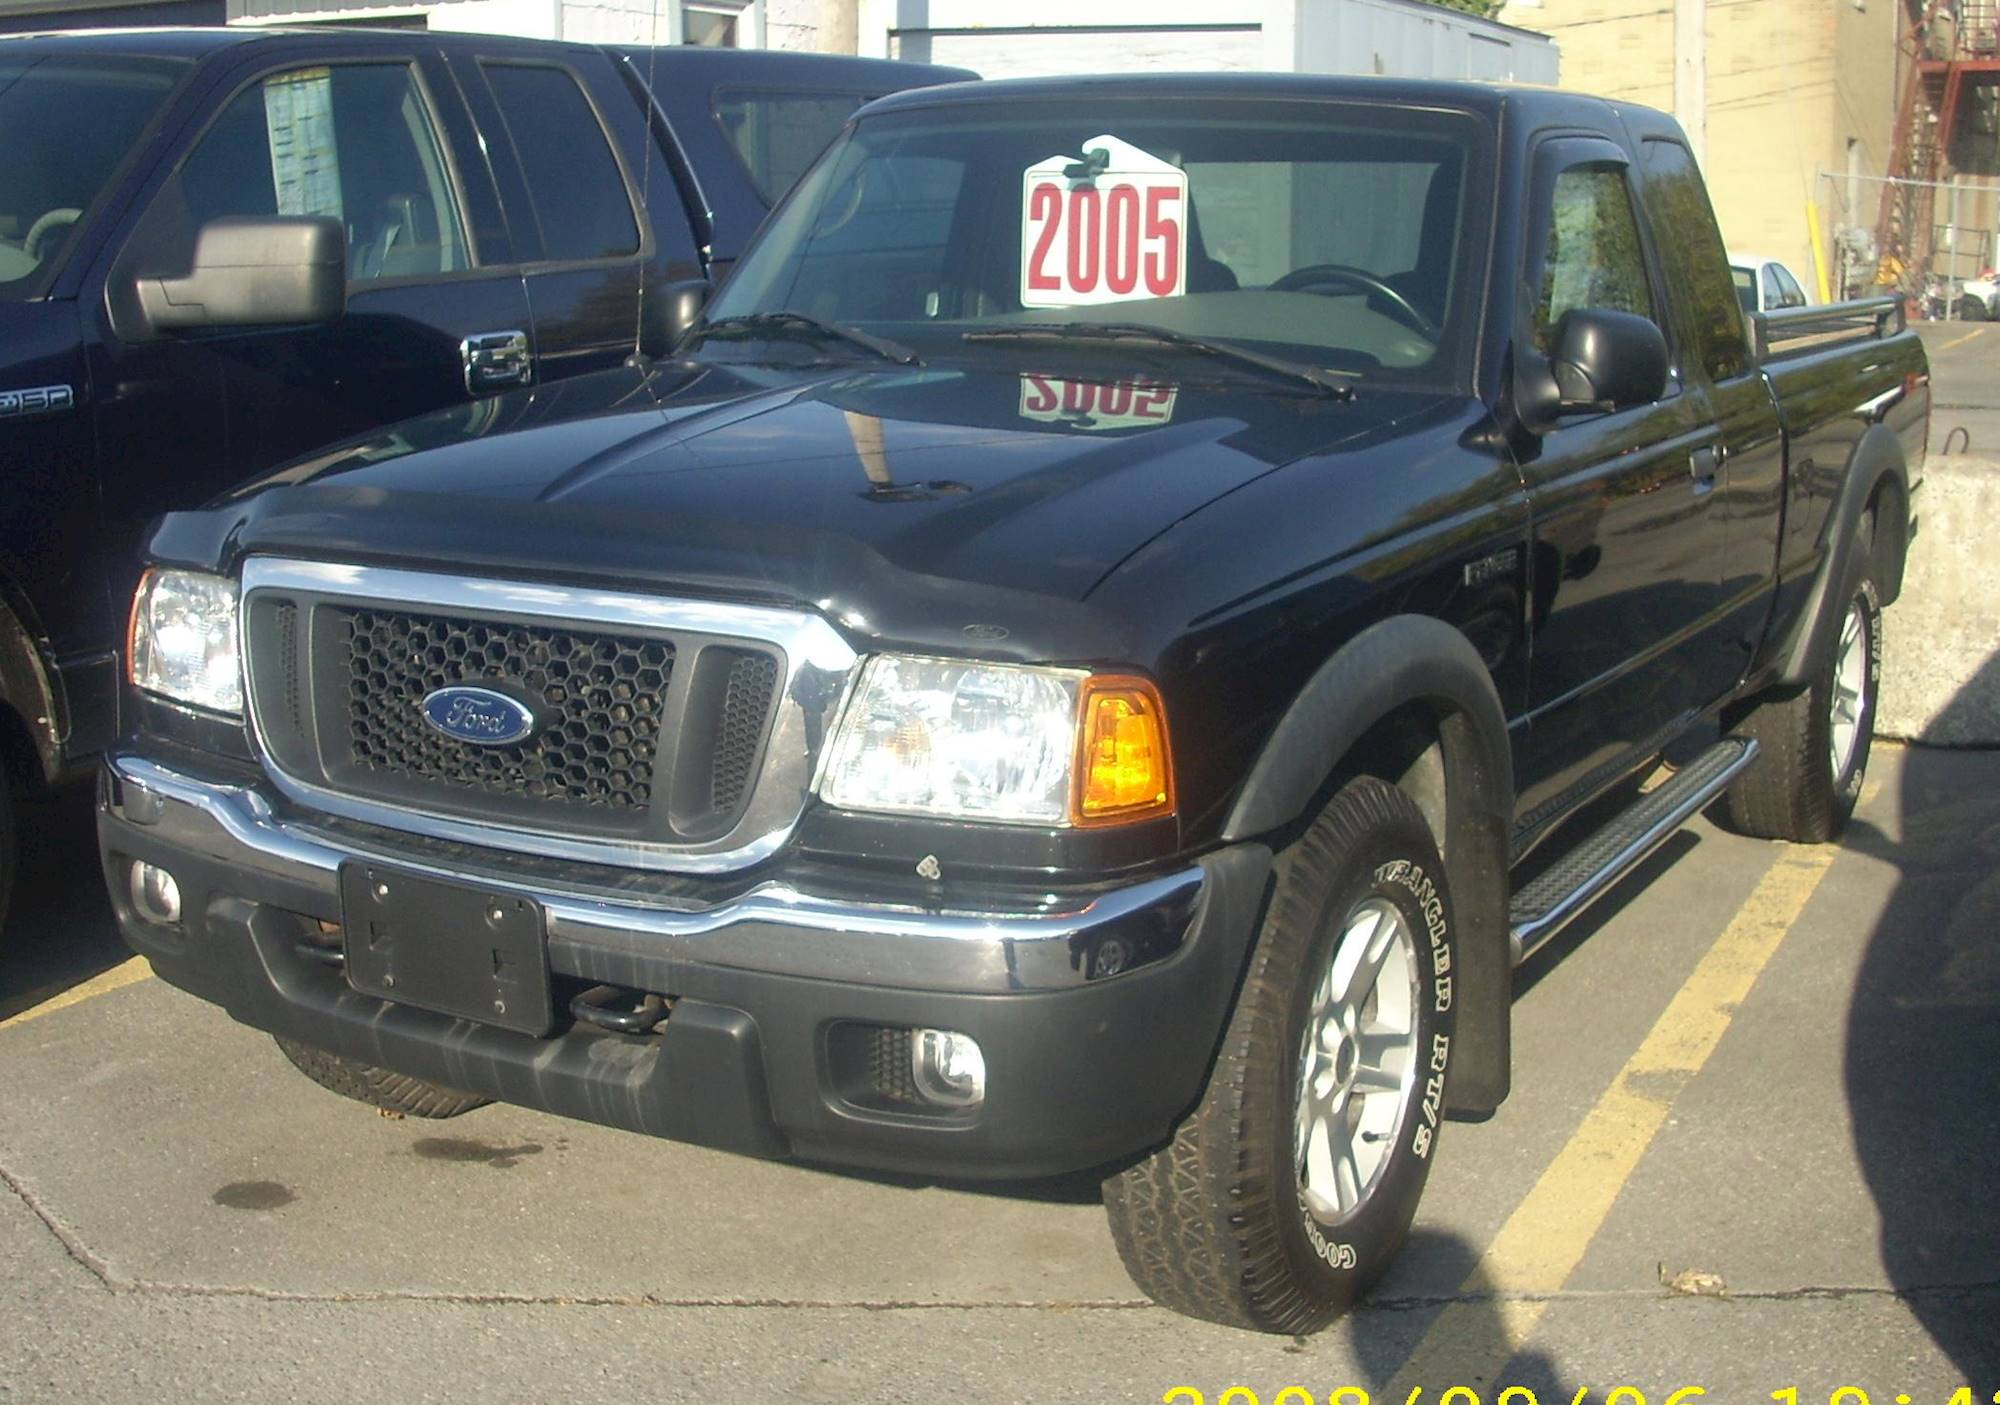 2005 ford ranger stx extended cab pickup 3 0l v6 manual. Black Bedroom Furniture Sets. Home Design Ideas